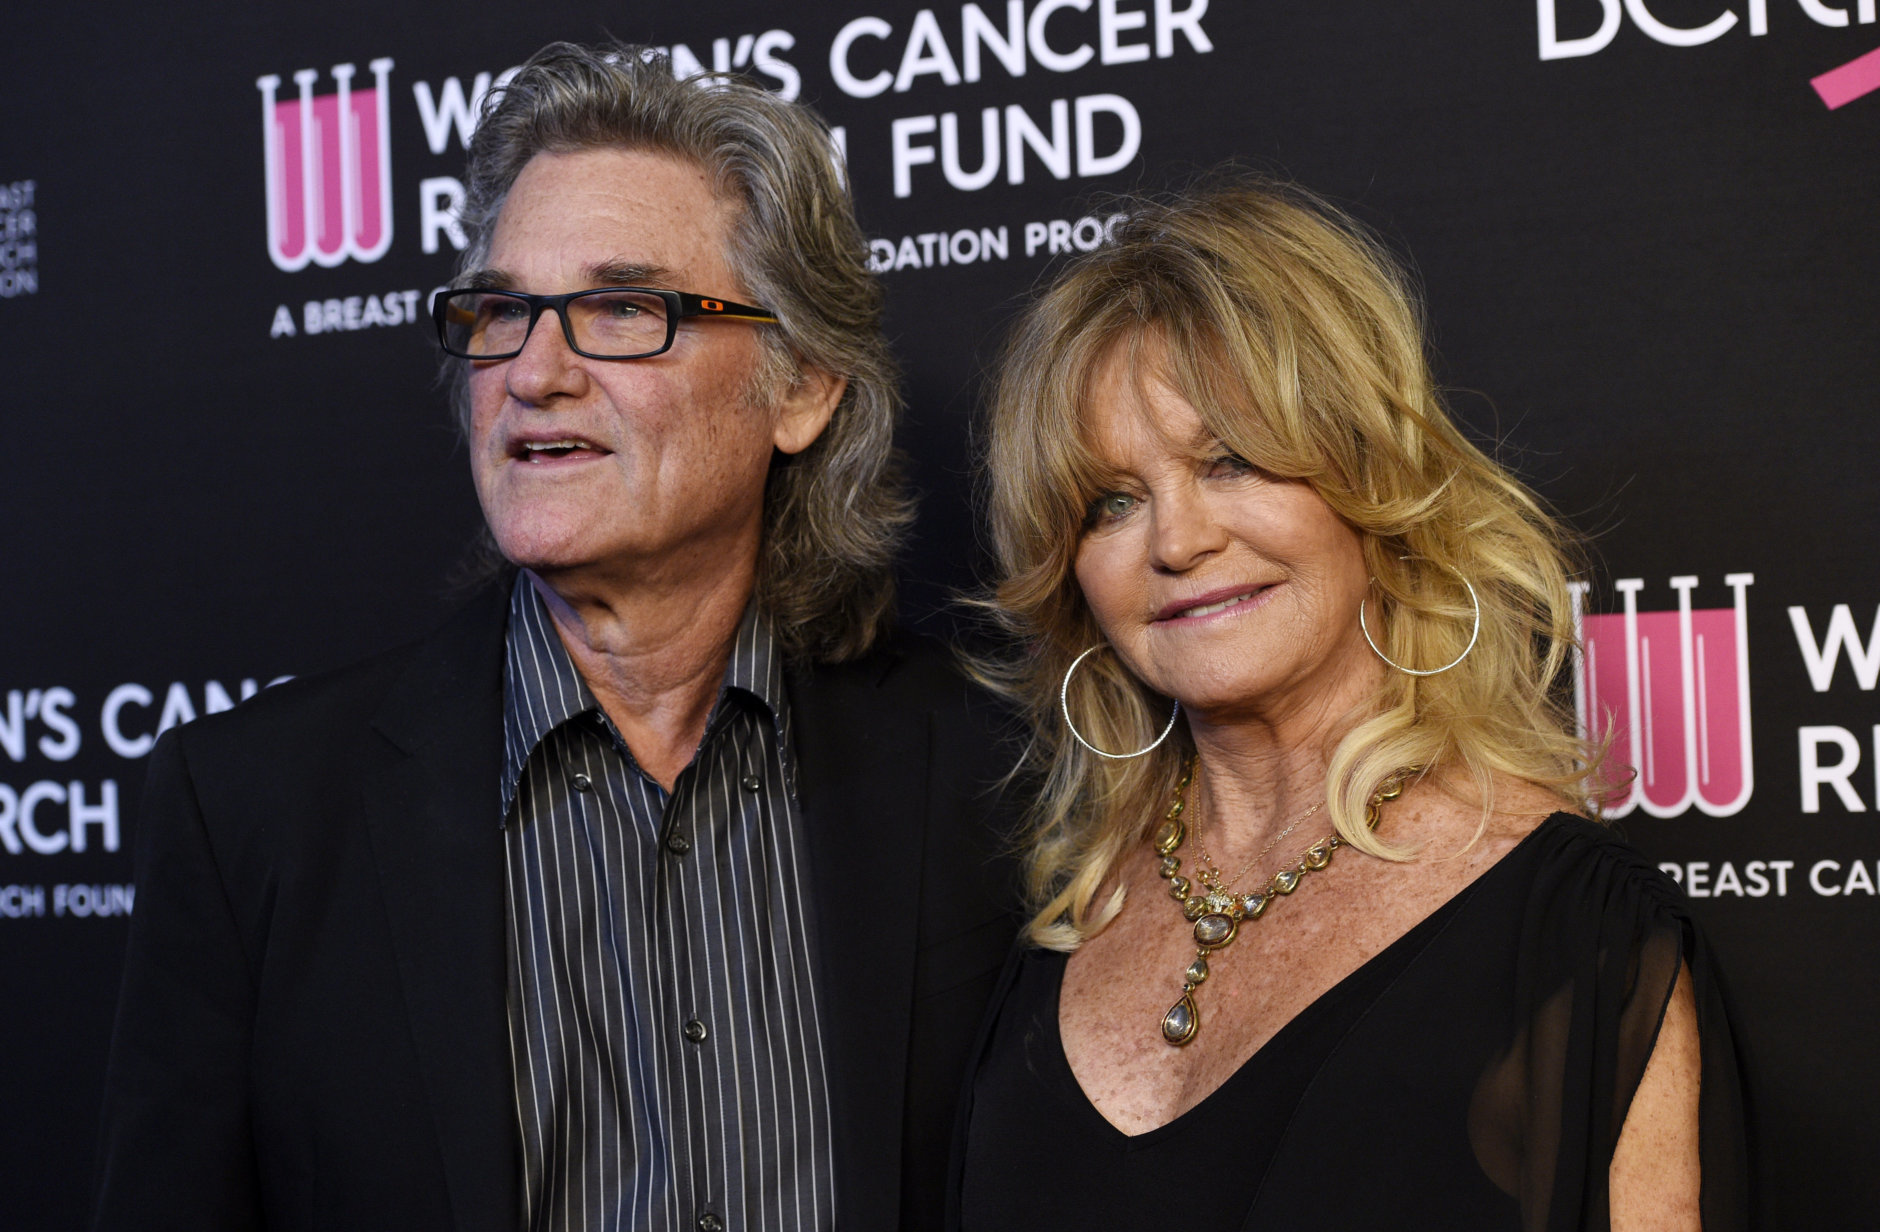 """Actors Kurt Russell, left, and Goldie Hawn pose together at the 2019 """"An Unforgettable Evening"""" benefiting the Women's Cancer Research Fund, at the Beverly Wilshire Hotel, Thursday, Feb. 28, 2019, in Beverly Hills, Calif. (Photo by Chris Pizzello/Invision/AP)"""